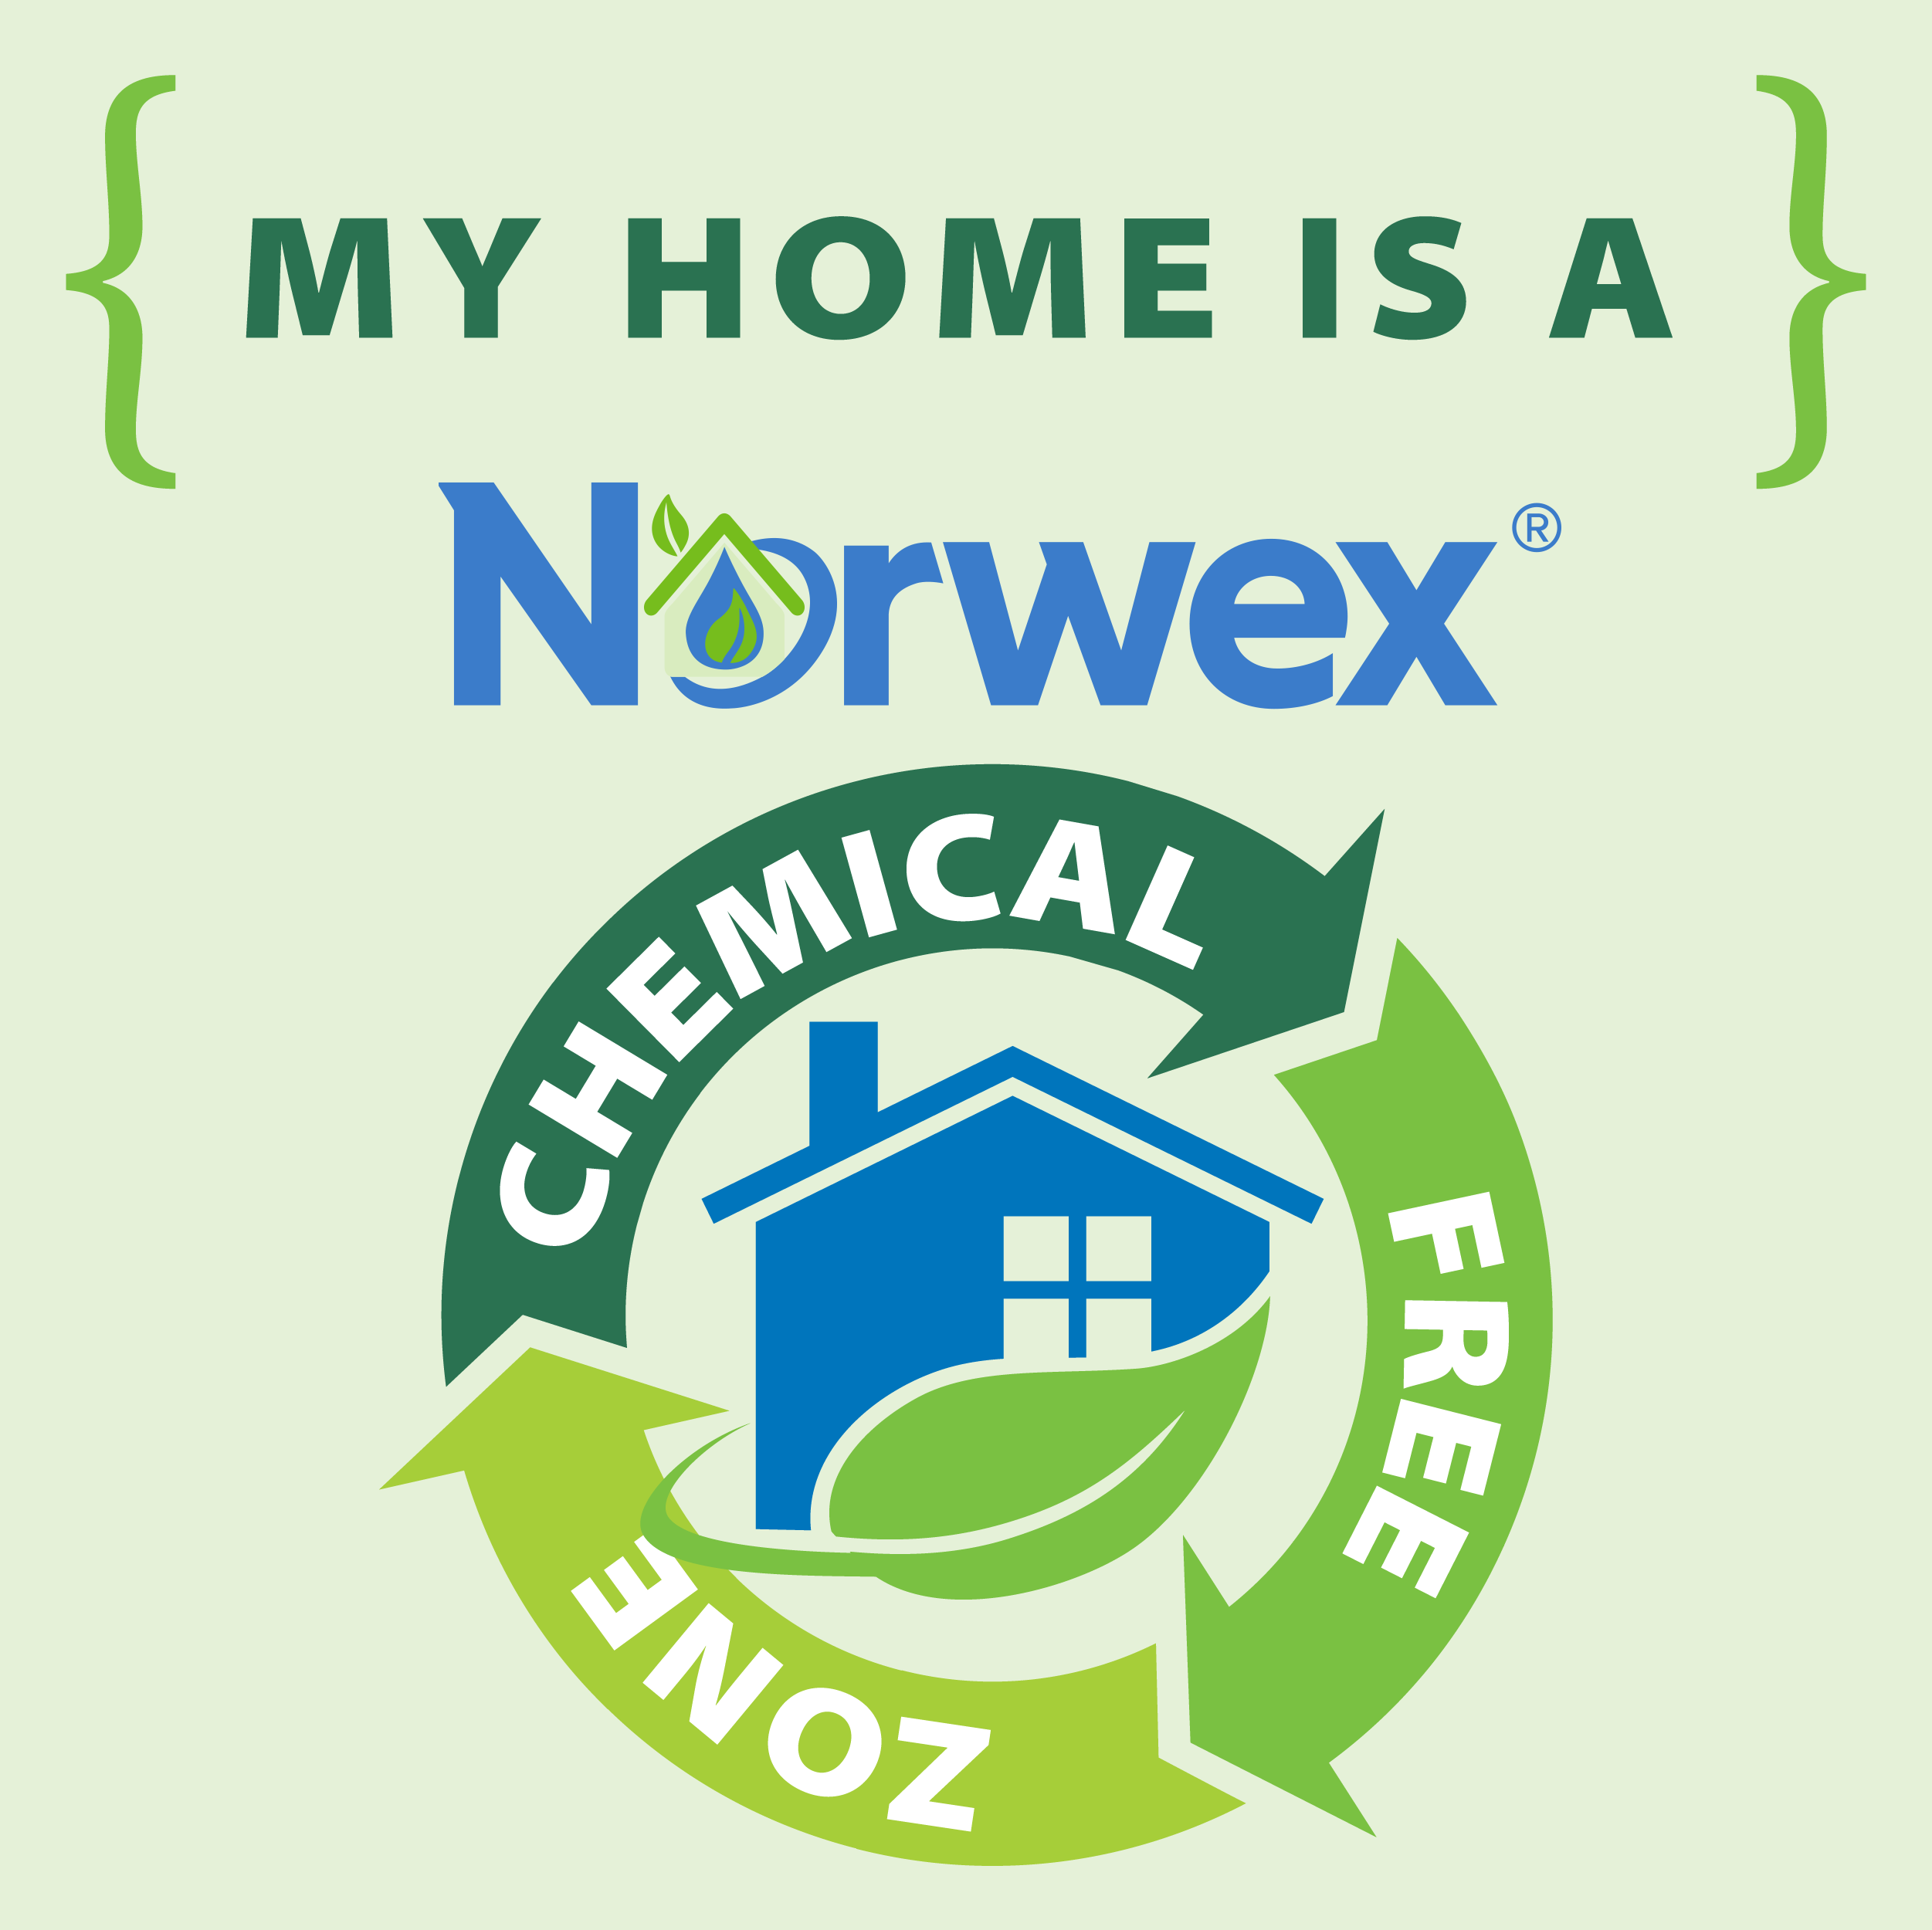 Chemical Free Badges Green 1 Png 2502 2500 Norwex Norwex Consultant Norwex Party